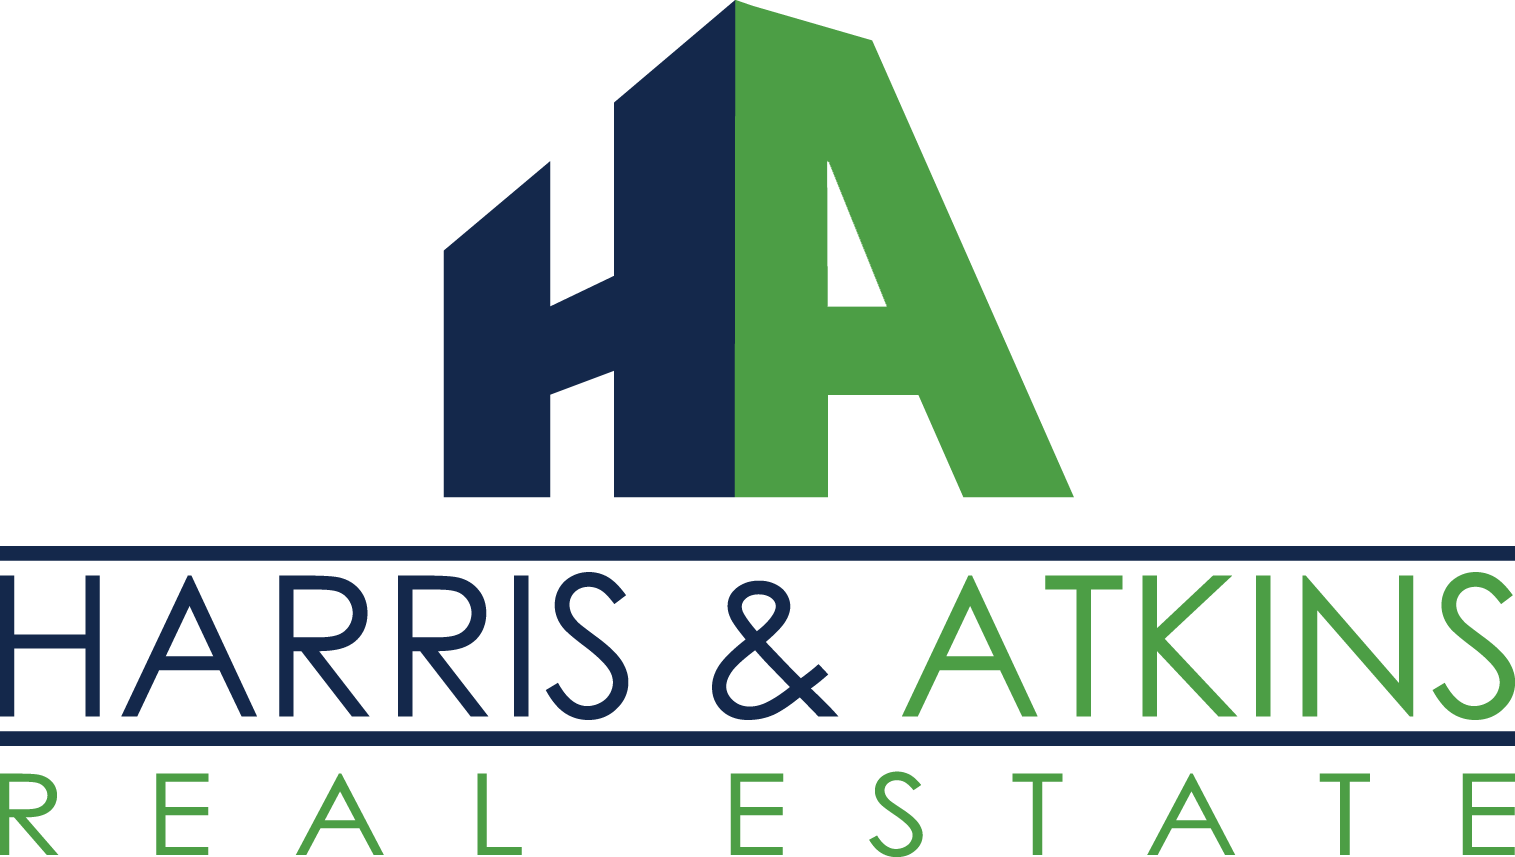 Harris & Atkins Real Estate